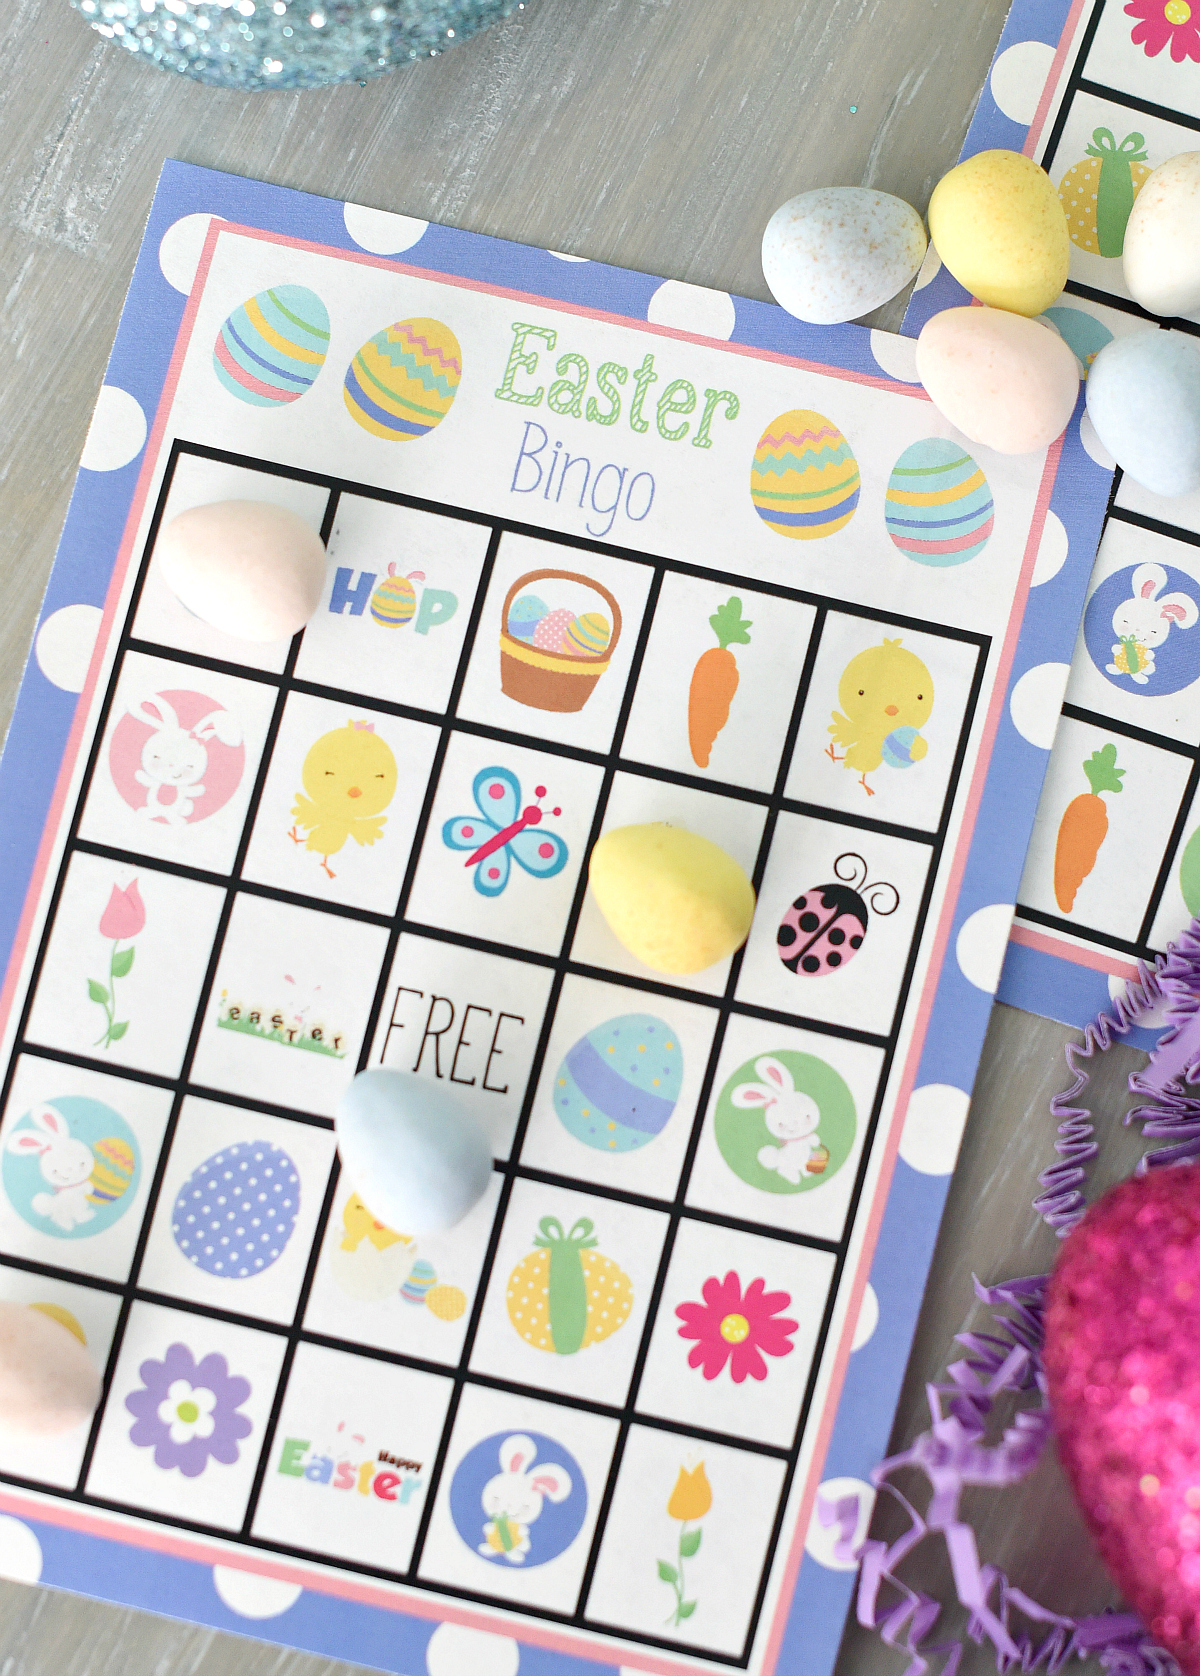 This is a picture of Dramatic Printable Easter Bingo Cards